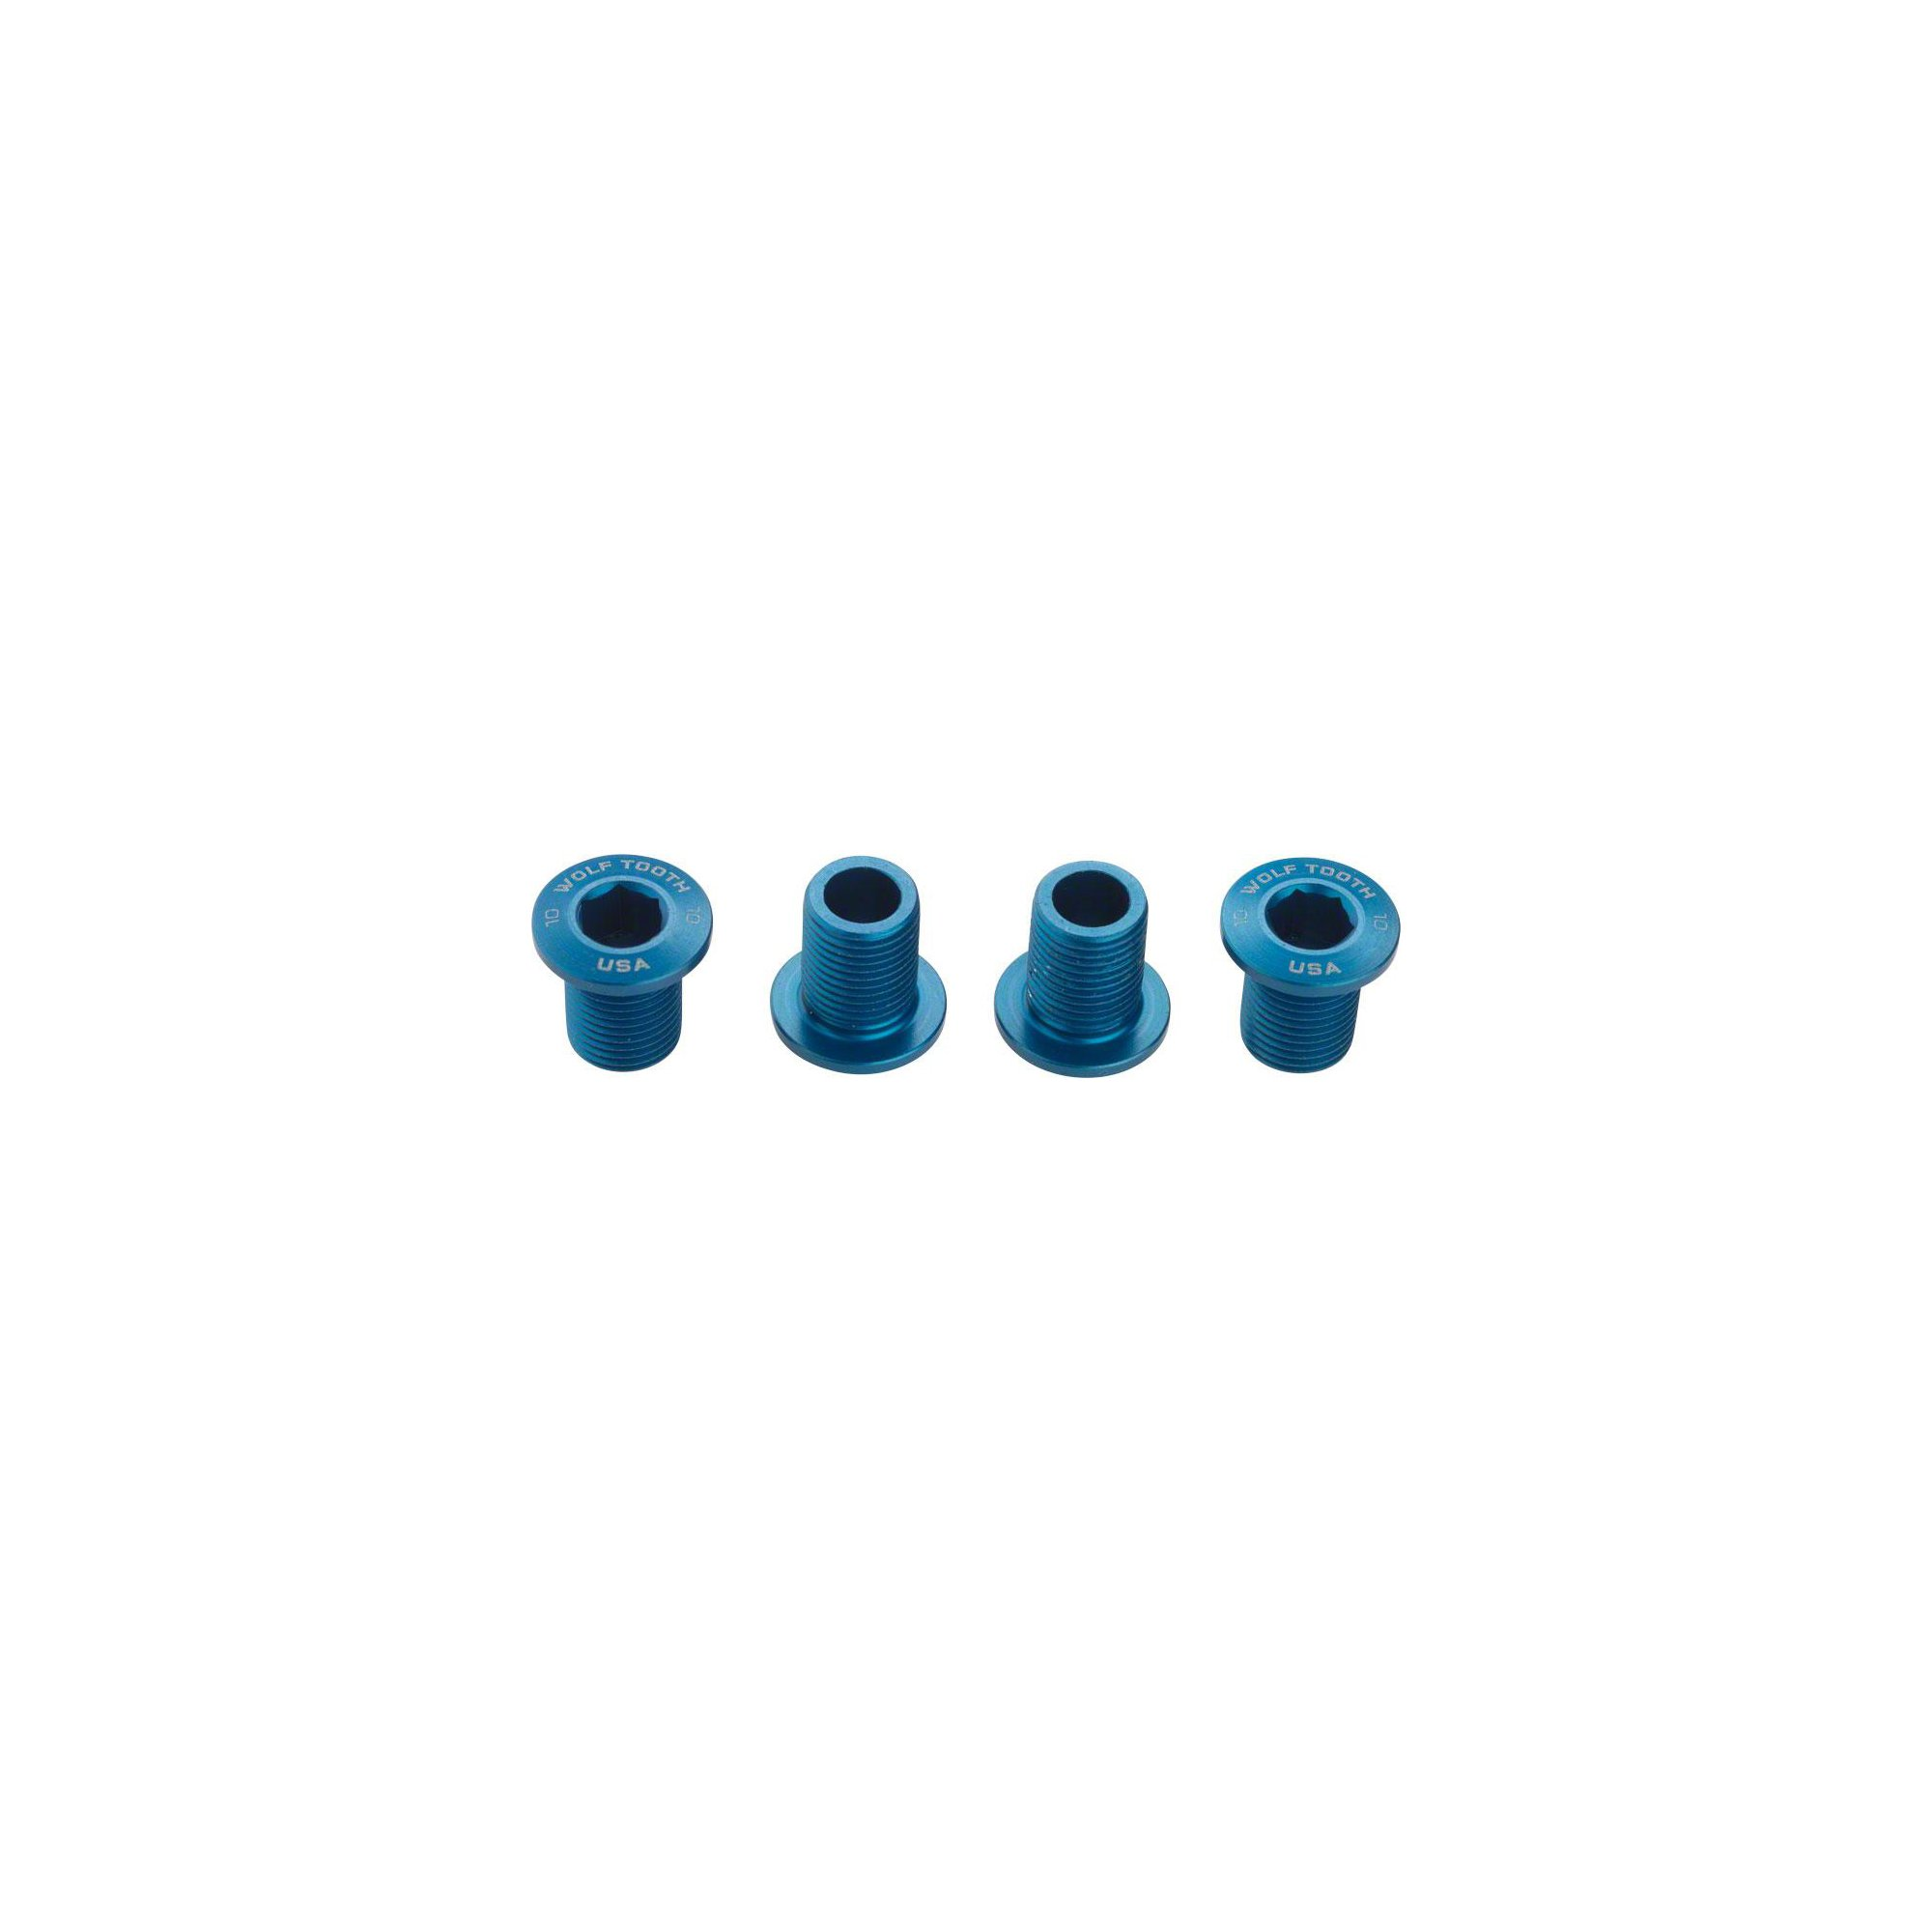 Wolf Tooth Components Set of Chainring Bolts for 104 x 30T Rings(10 mm long) by Wolf Tooth Components